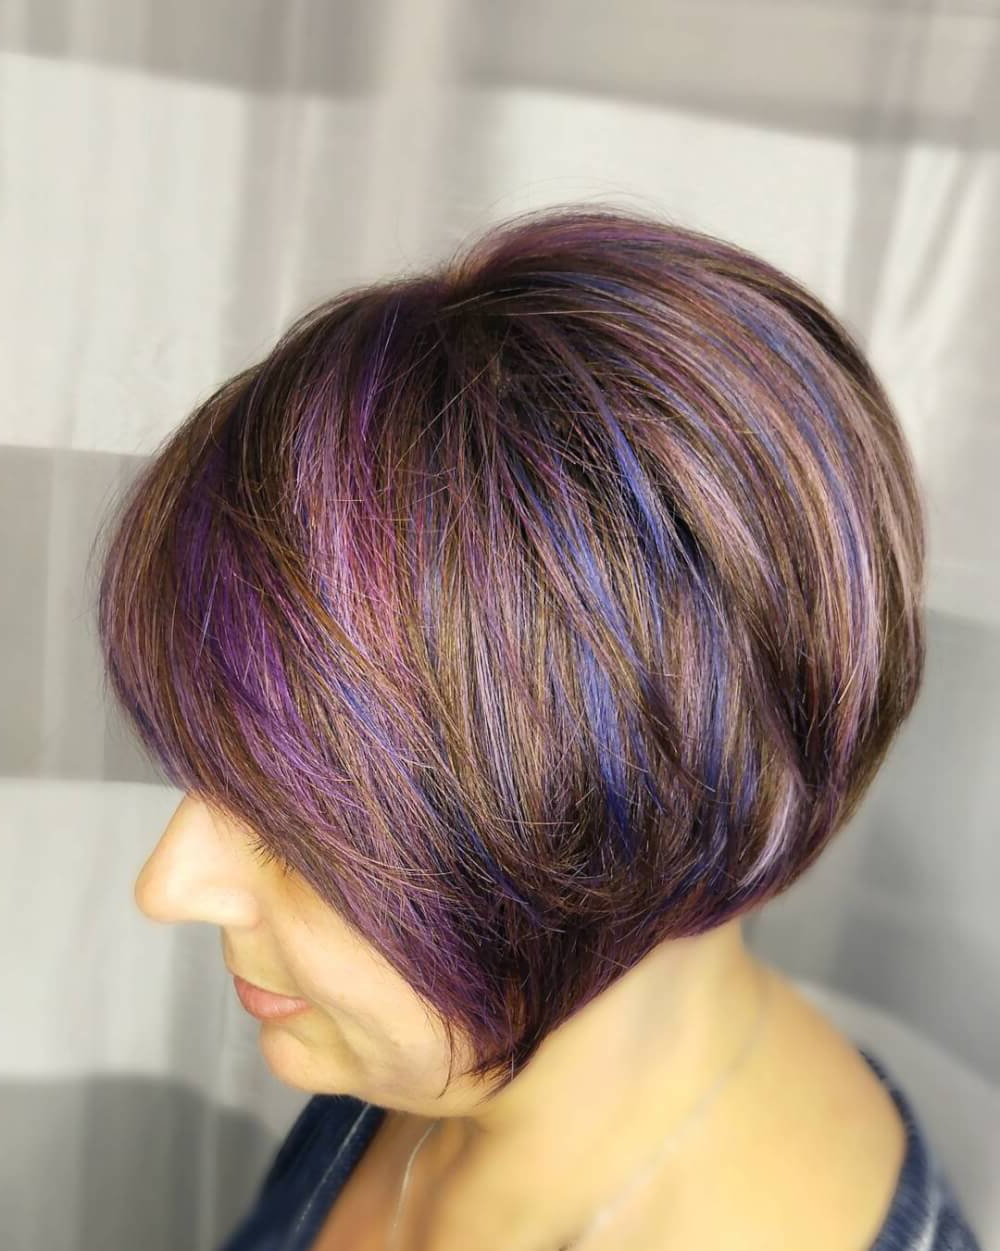 Recent Youthful Bob Hairstyles In 40 Cute & Youthful Short Hairstyles For Women Over (View 18 of 20)